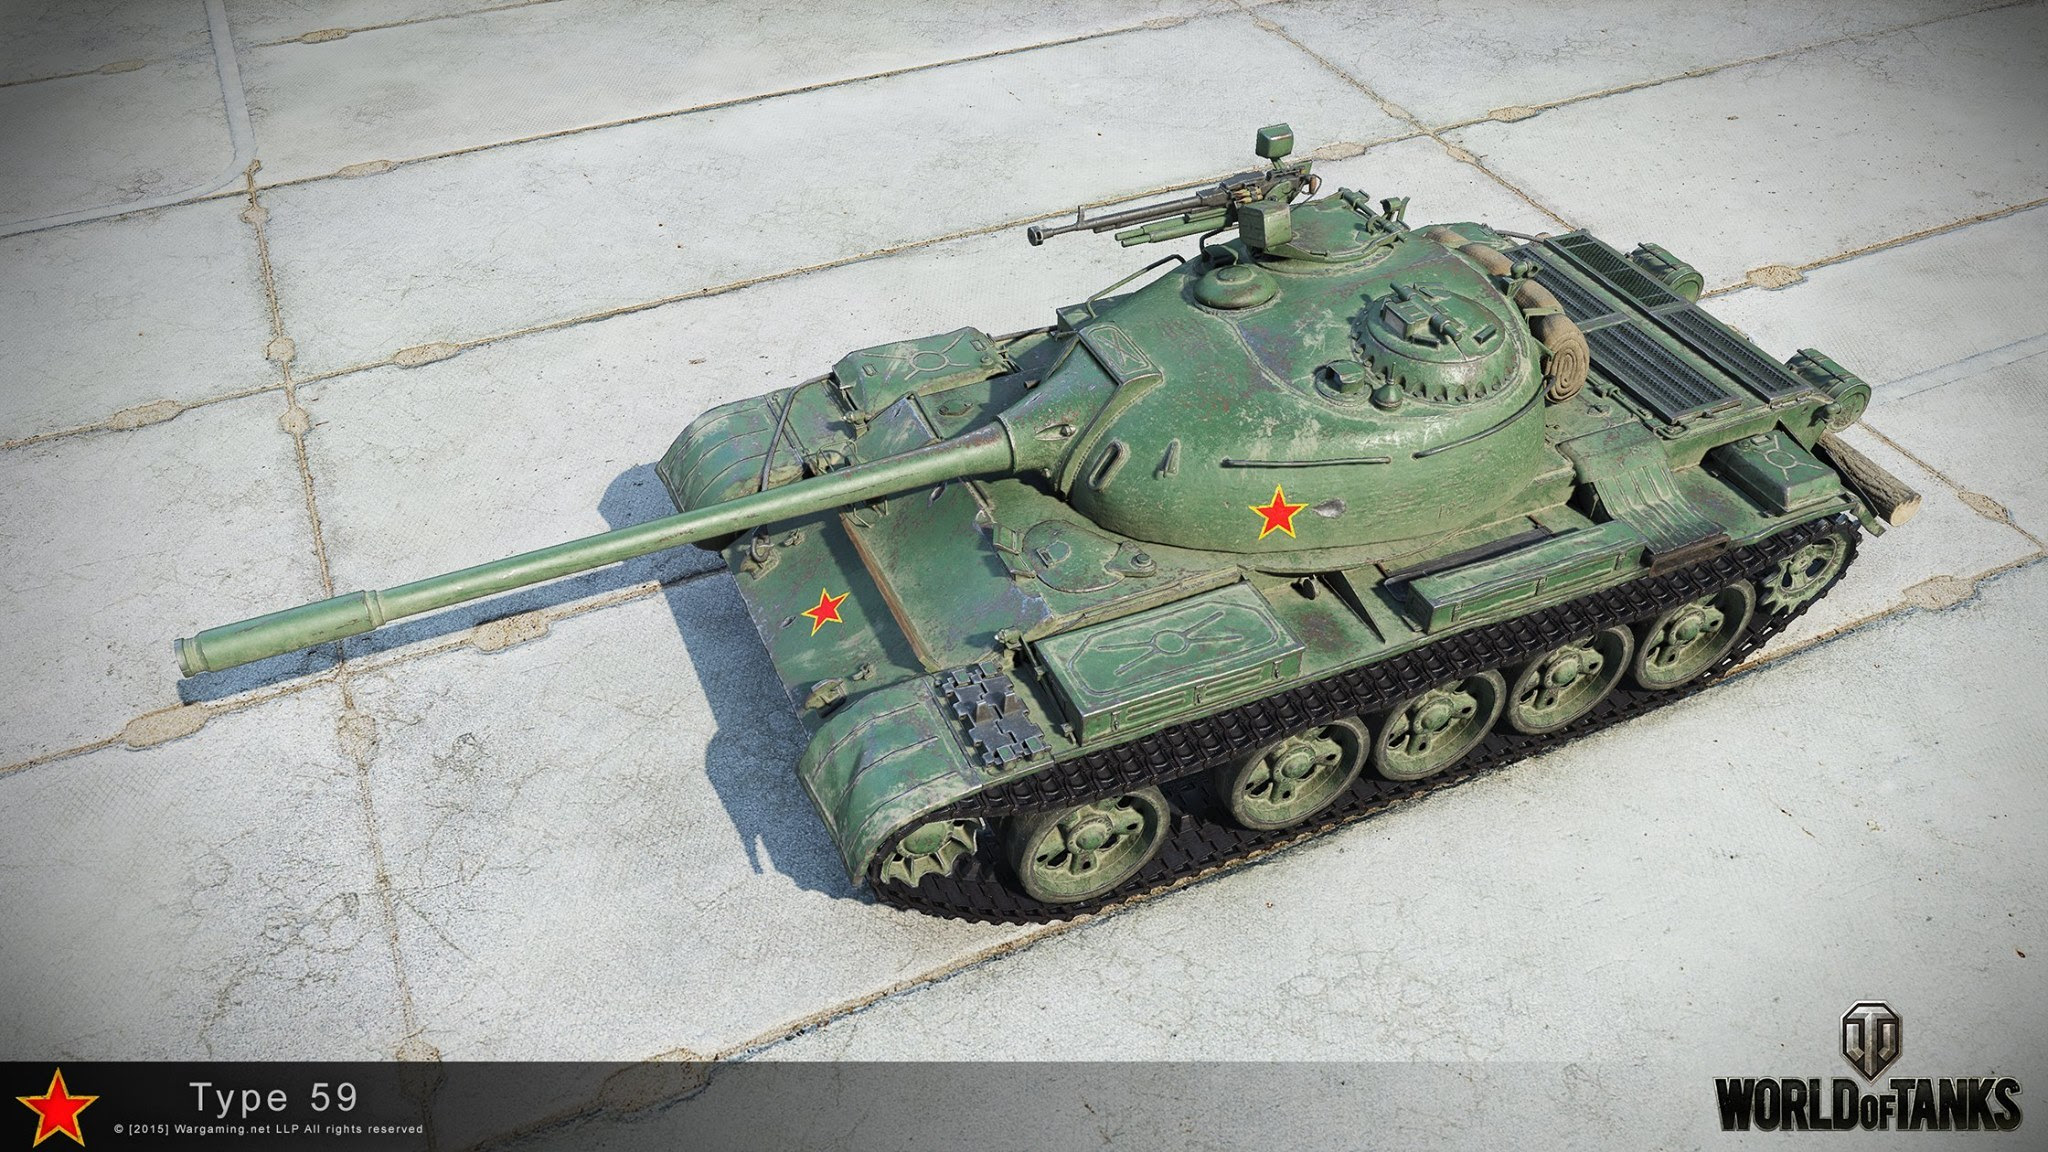 Type 59 w HD - World of Tanks - Dogry - Gry MMO, Sklep